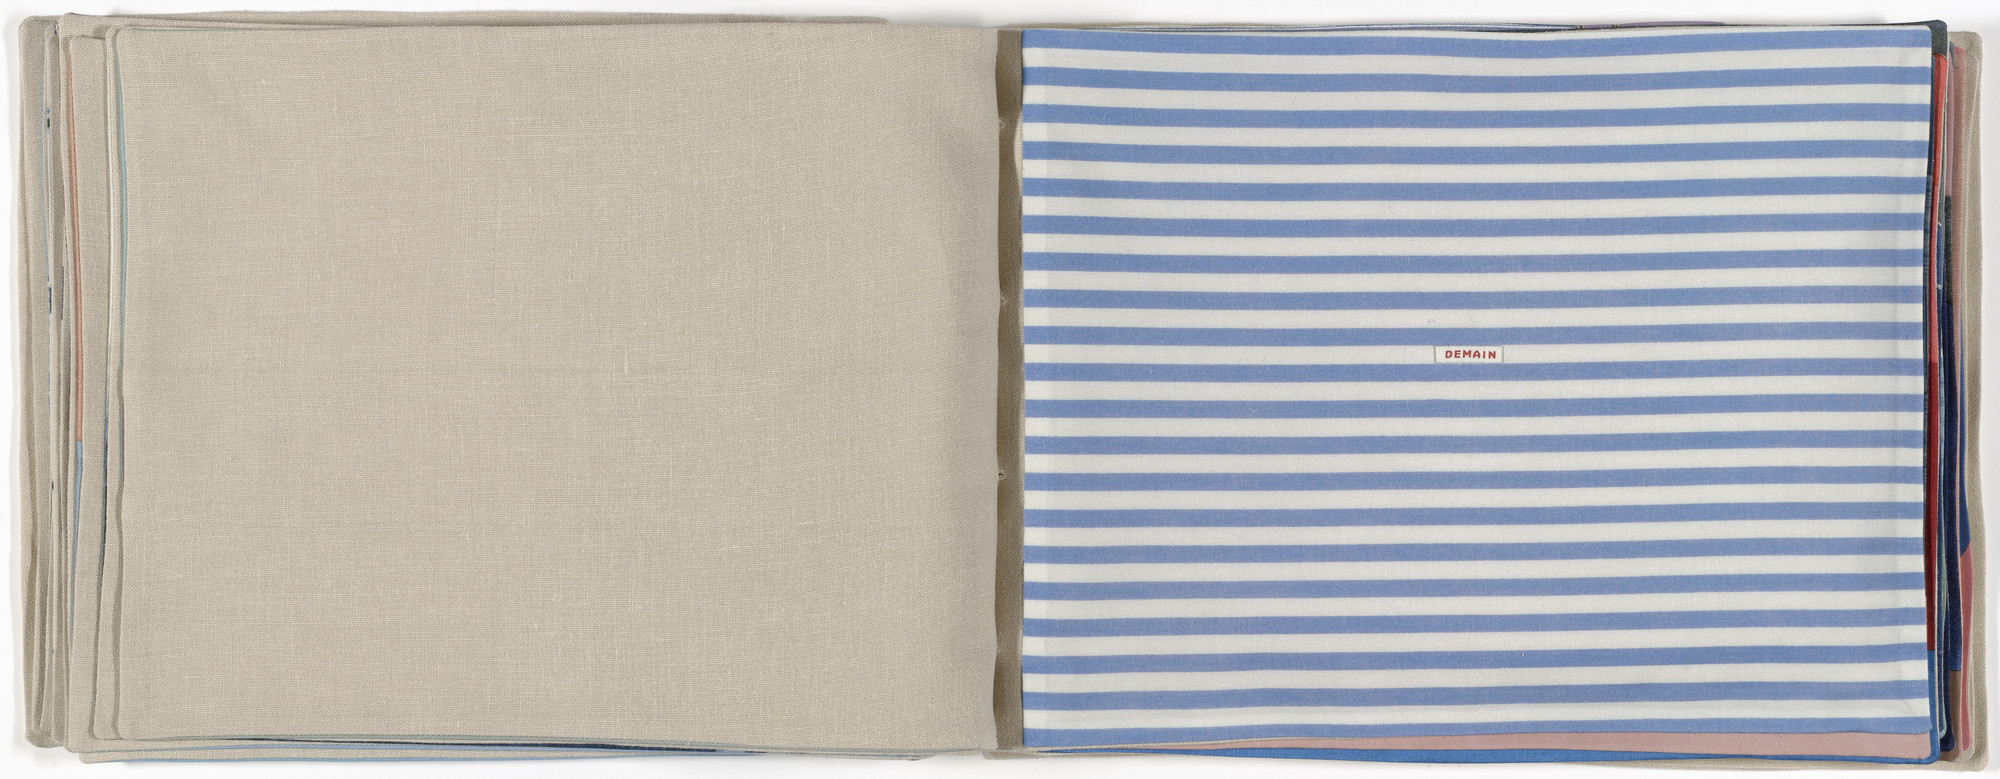 Louise Bourgeois. Untitled, no. 11 of 23, from the illustrated book, Ode à la Bièvre. 2007